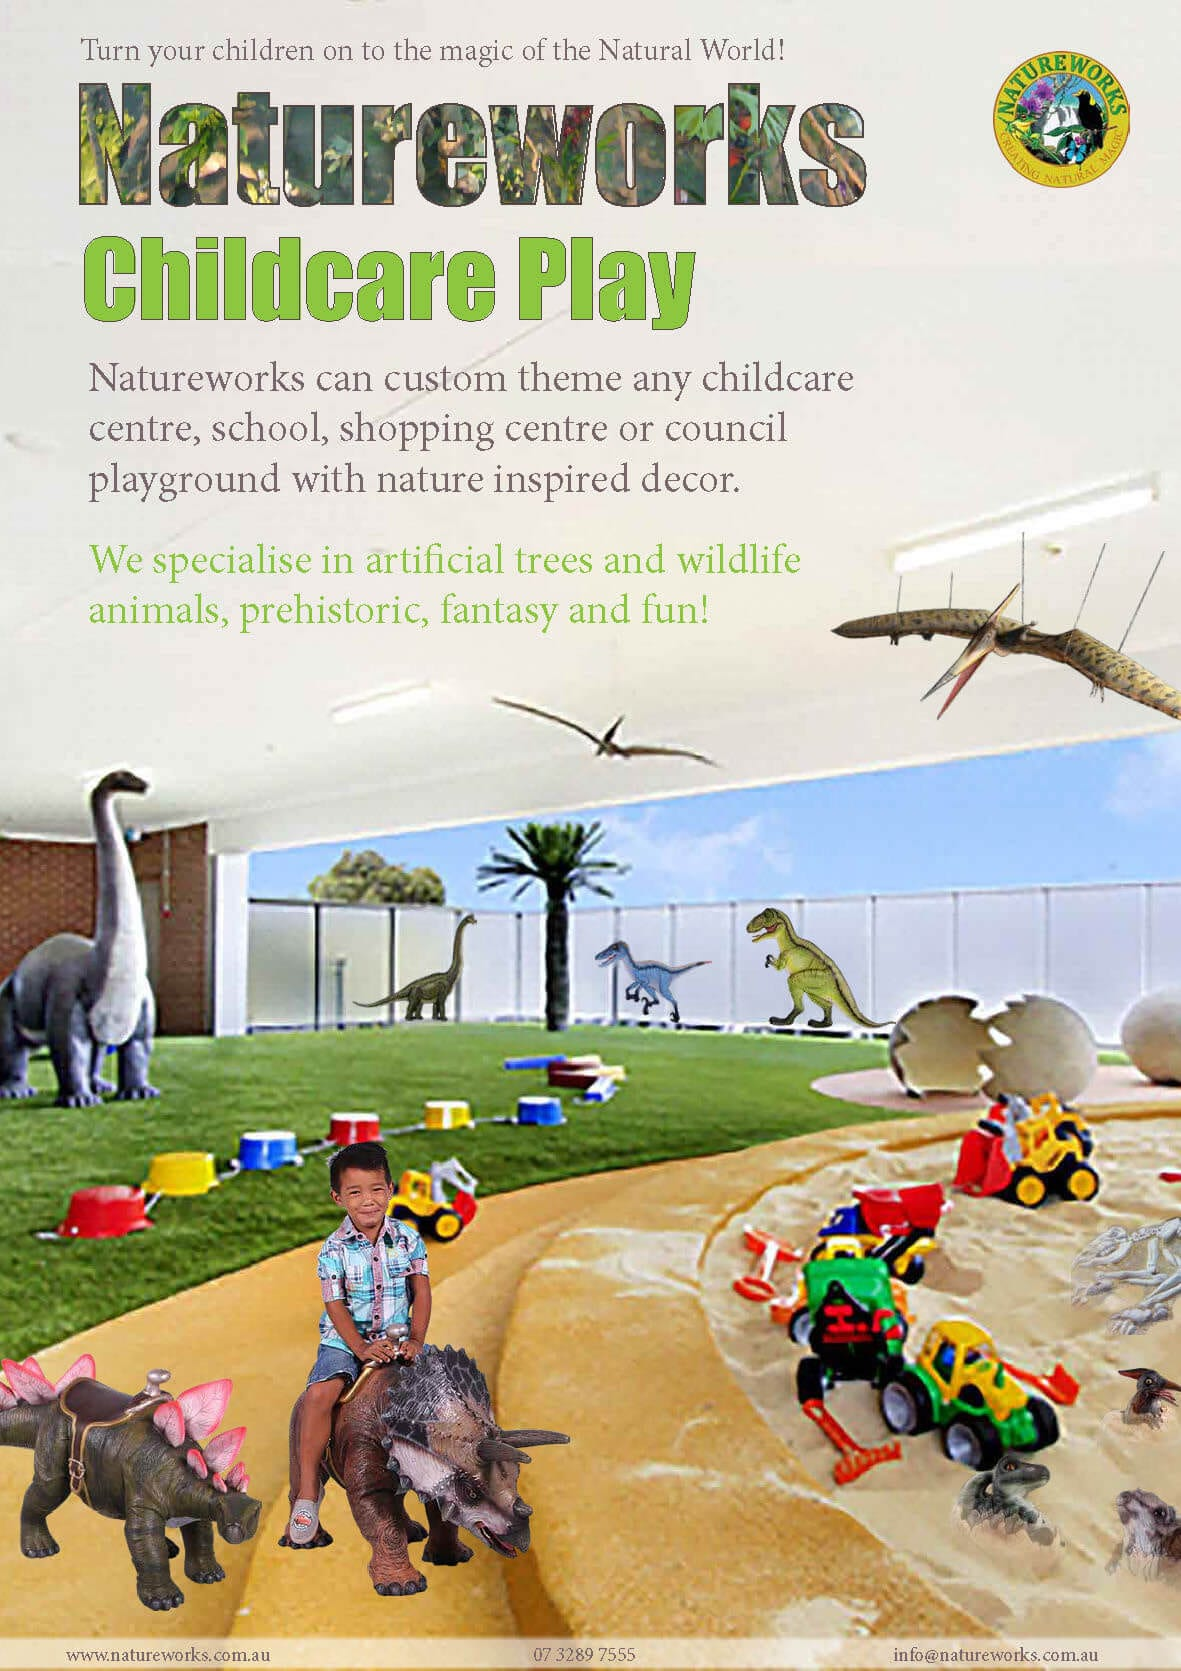 Our High-quality 2-D and 3D play concepts are unique from the rest and will add that touch of magic which will enrich your chosen play space